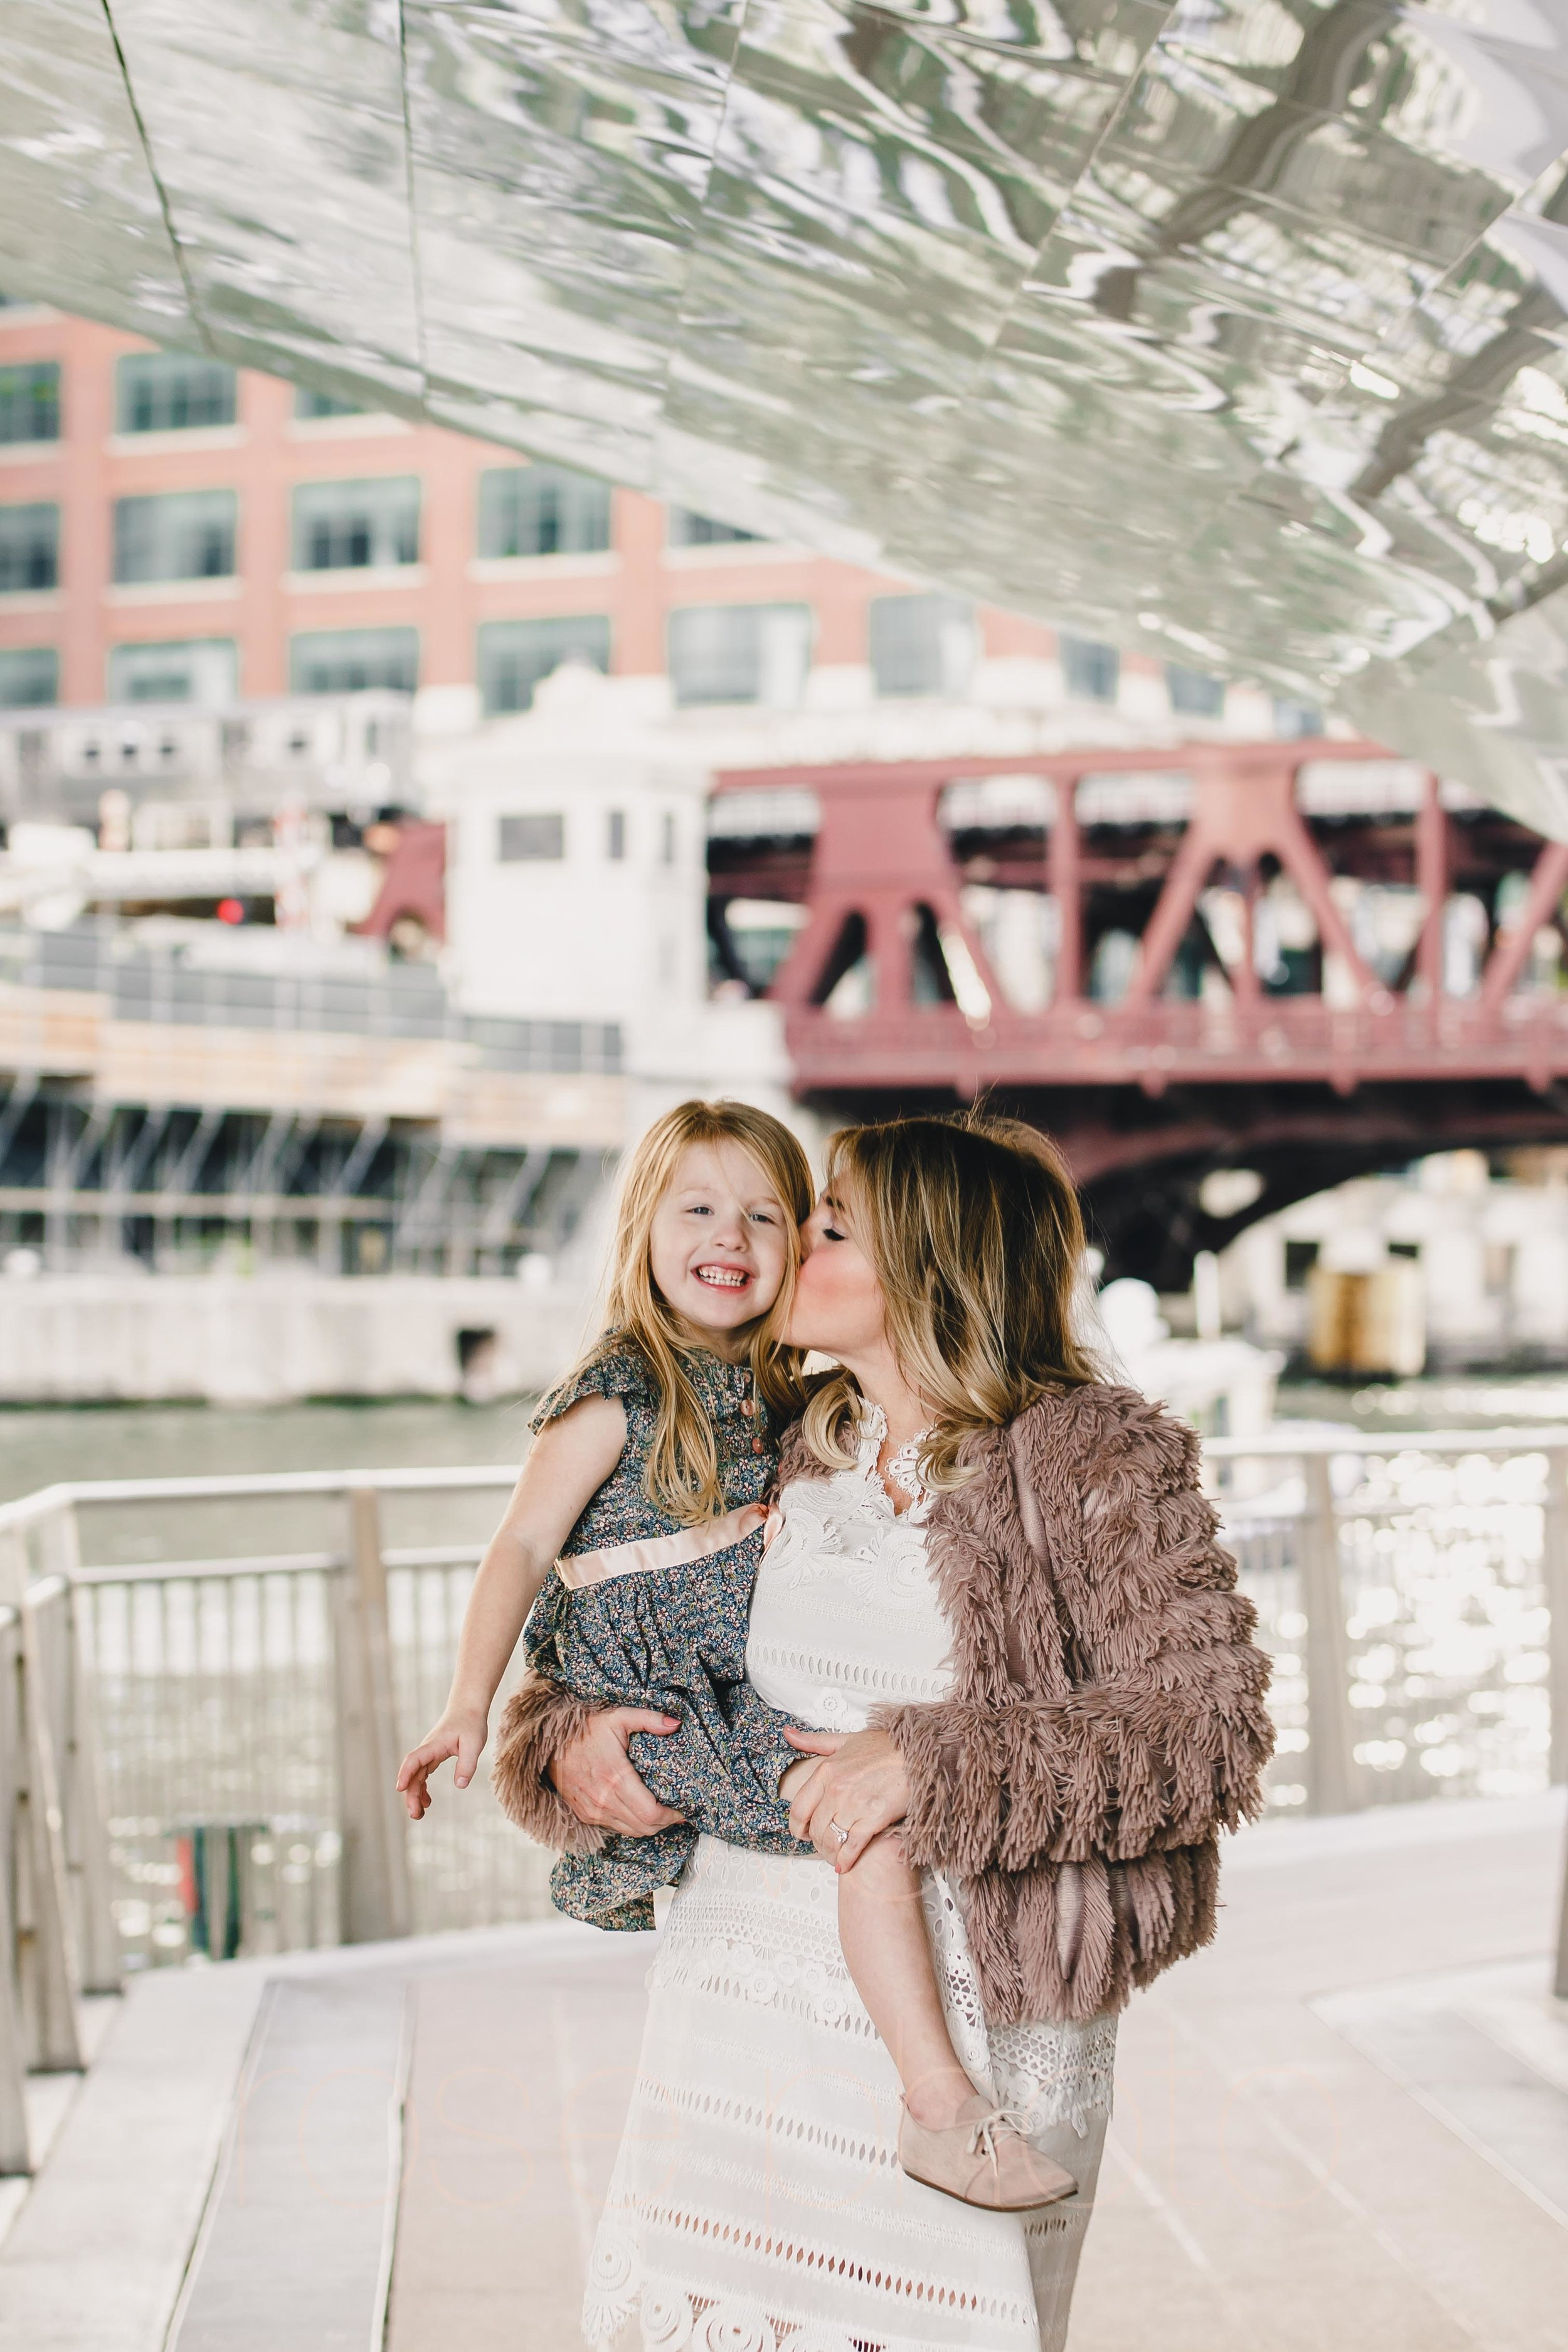 Lifestyle Photographer Chicago kids photos family shoot by Rose Photo -17.jpg